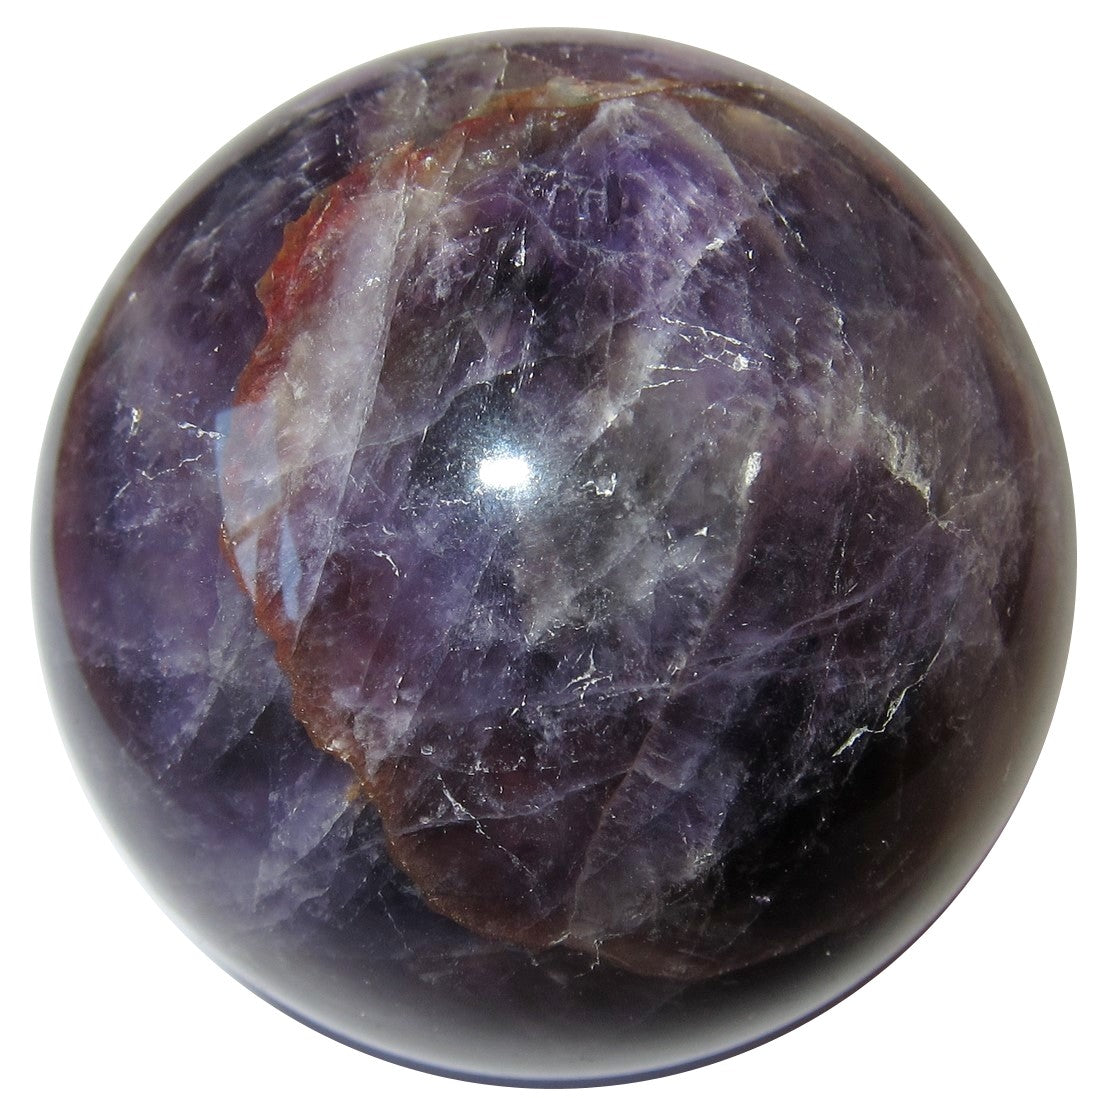 Uruguay amethyst sphere has a deeper purple color with striking red iron minerals and is offered by Satin Crystals